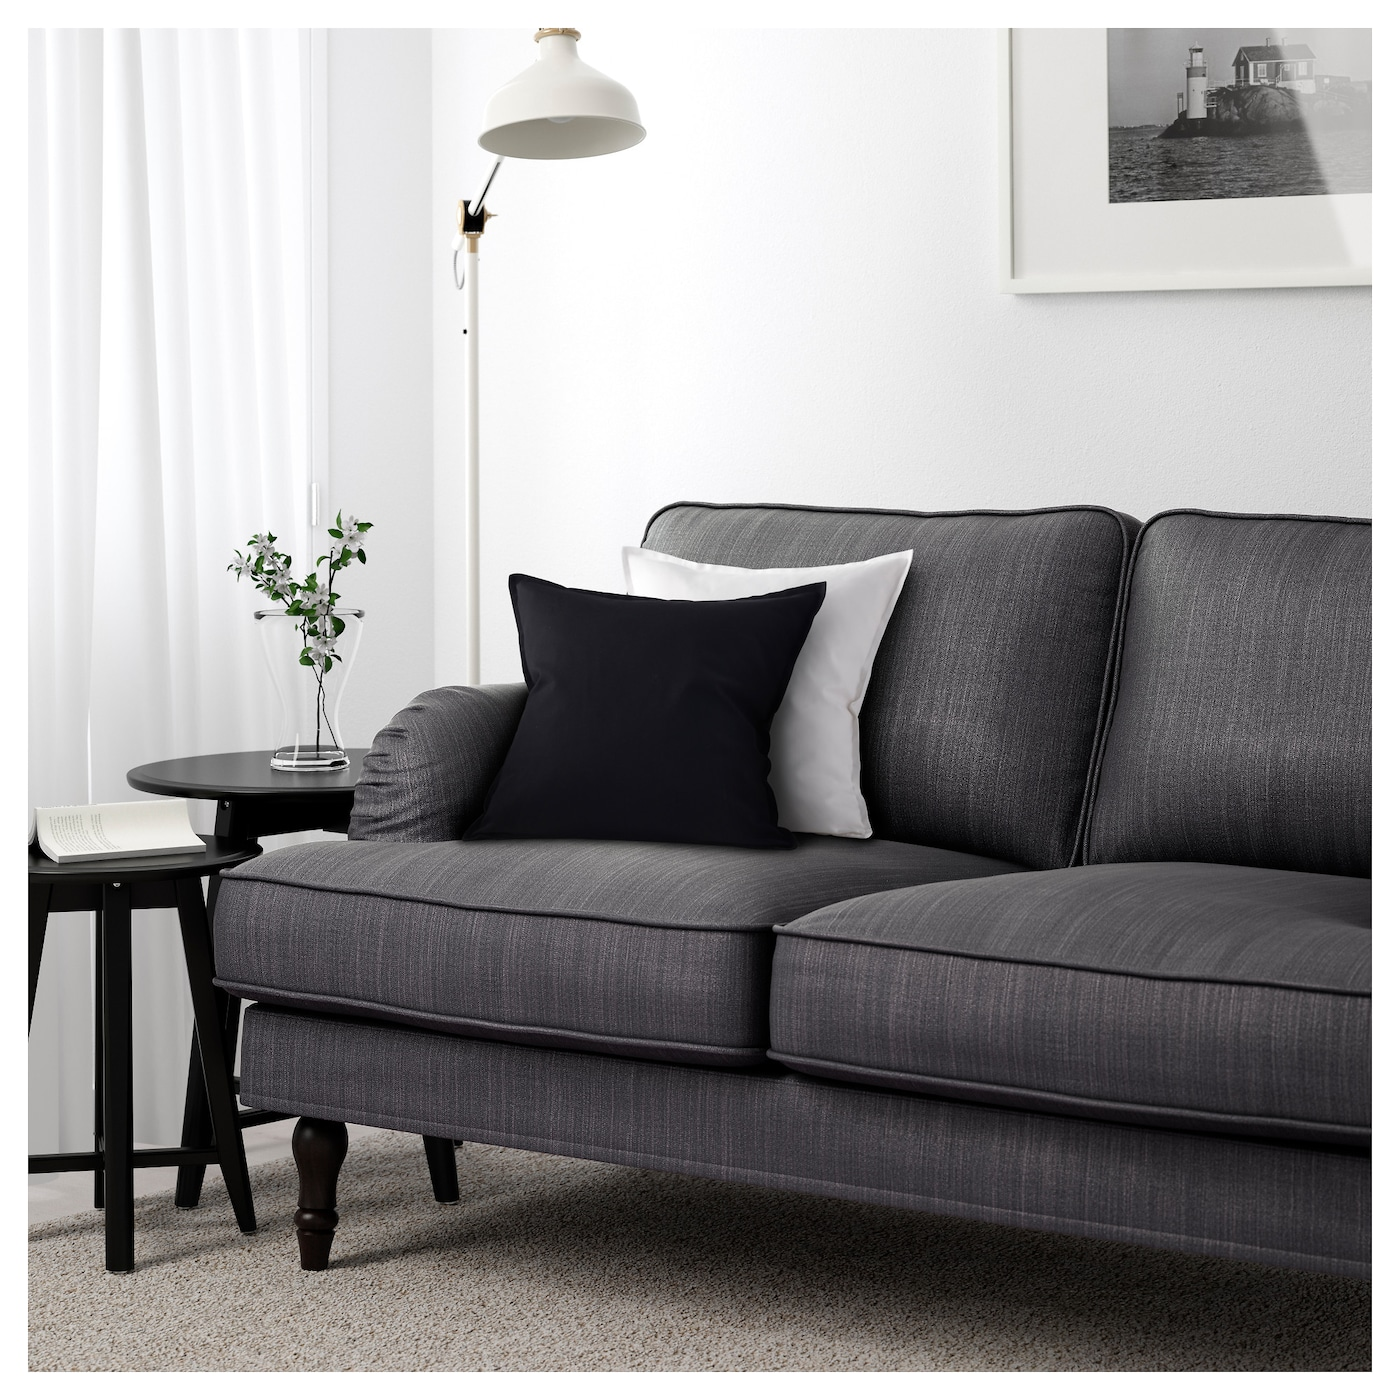 Stocksund three seat sofa nolhaga dark grey black wood ikea for Ikea gray sofa